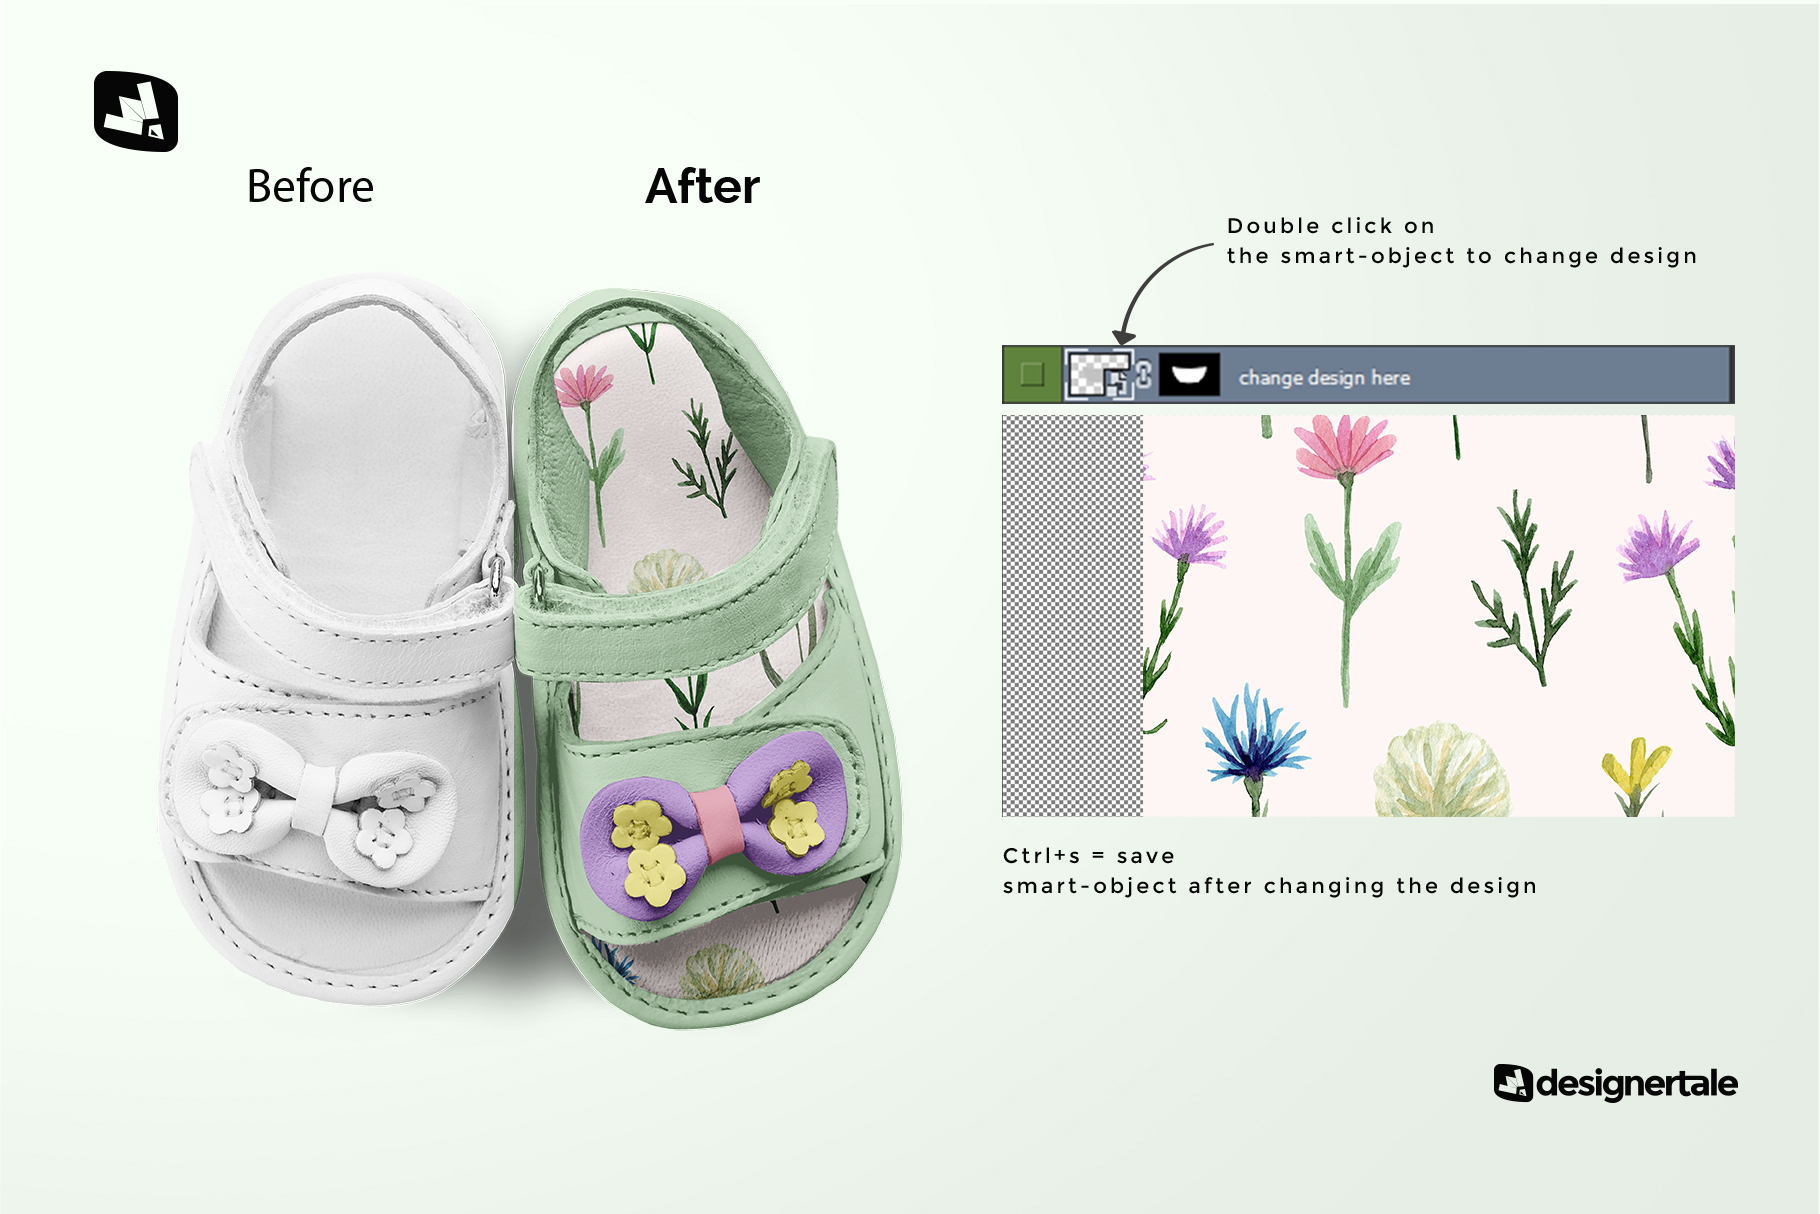 how to change design of the topview baby sandals with bow mockup